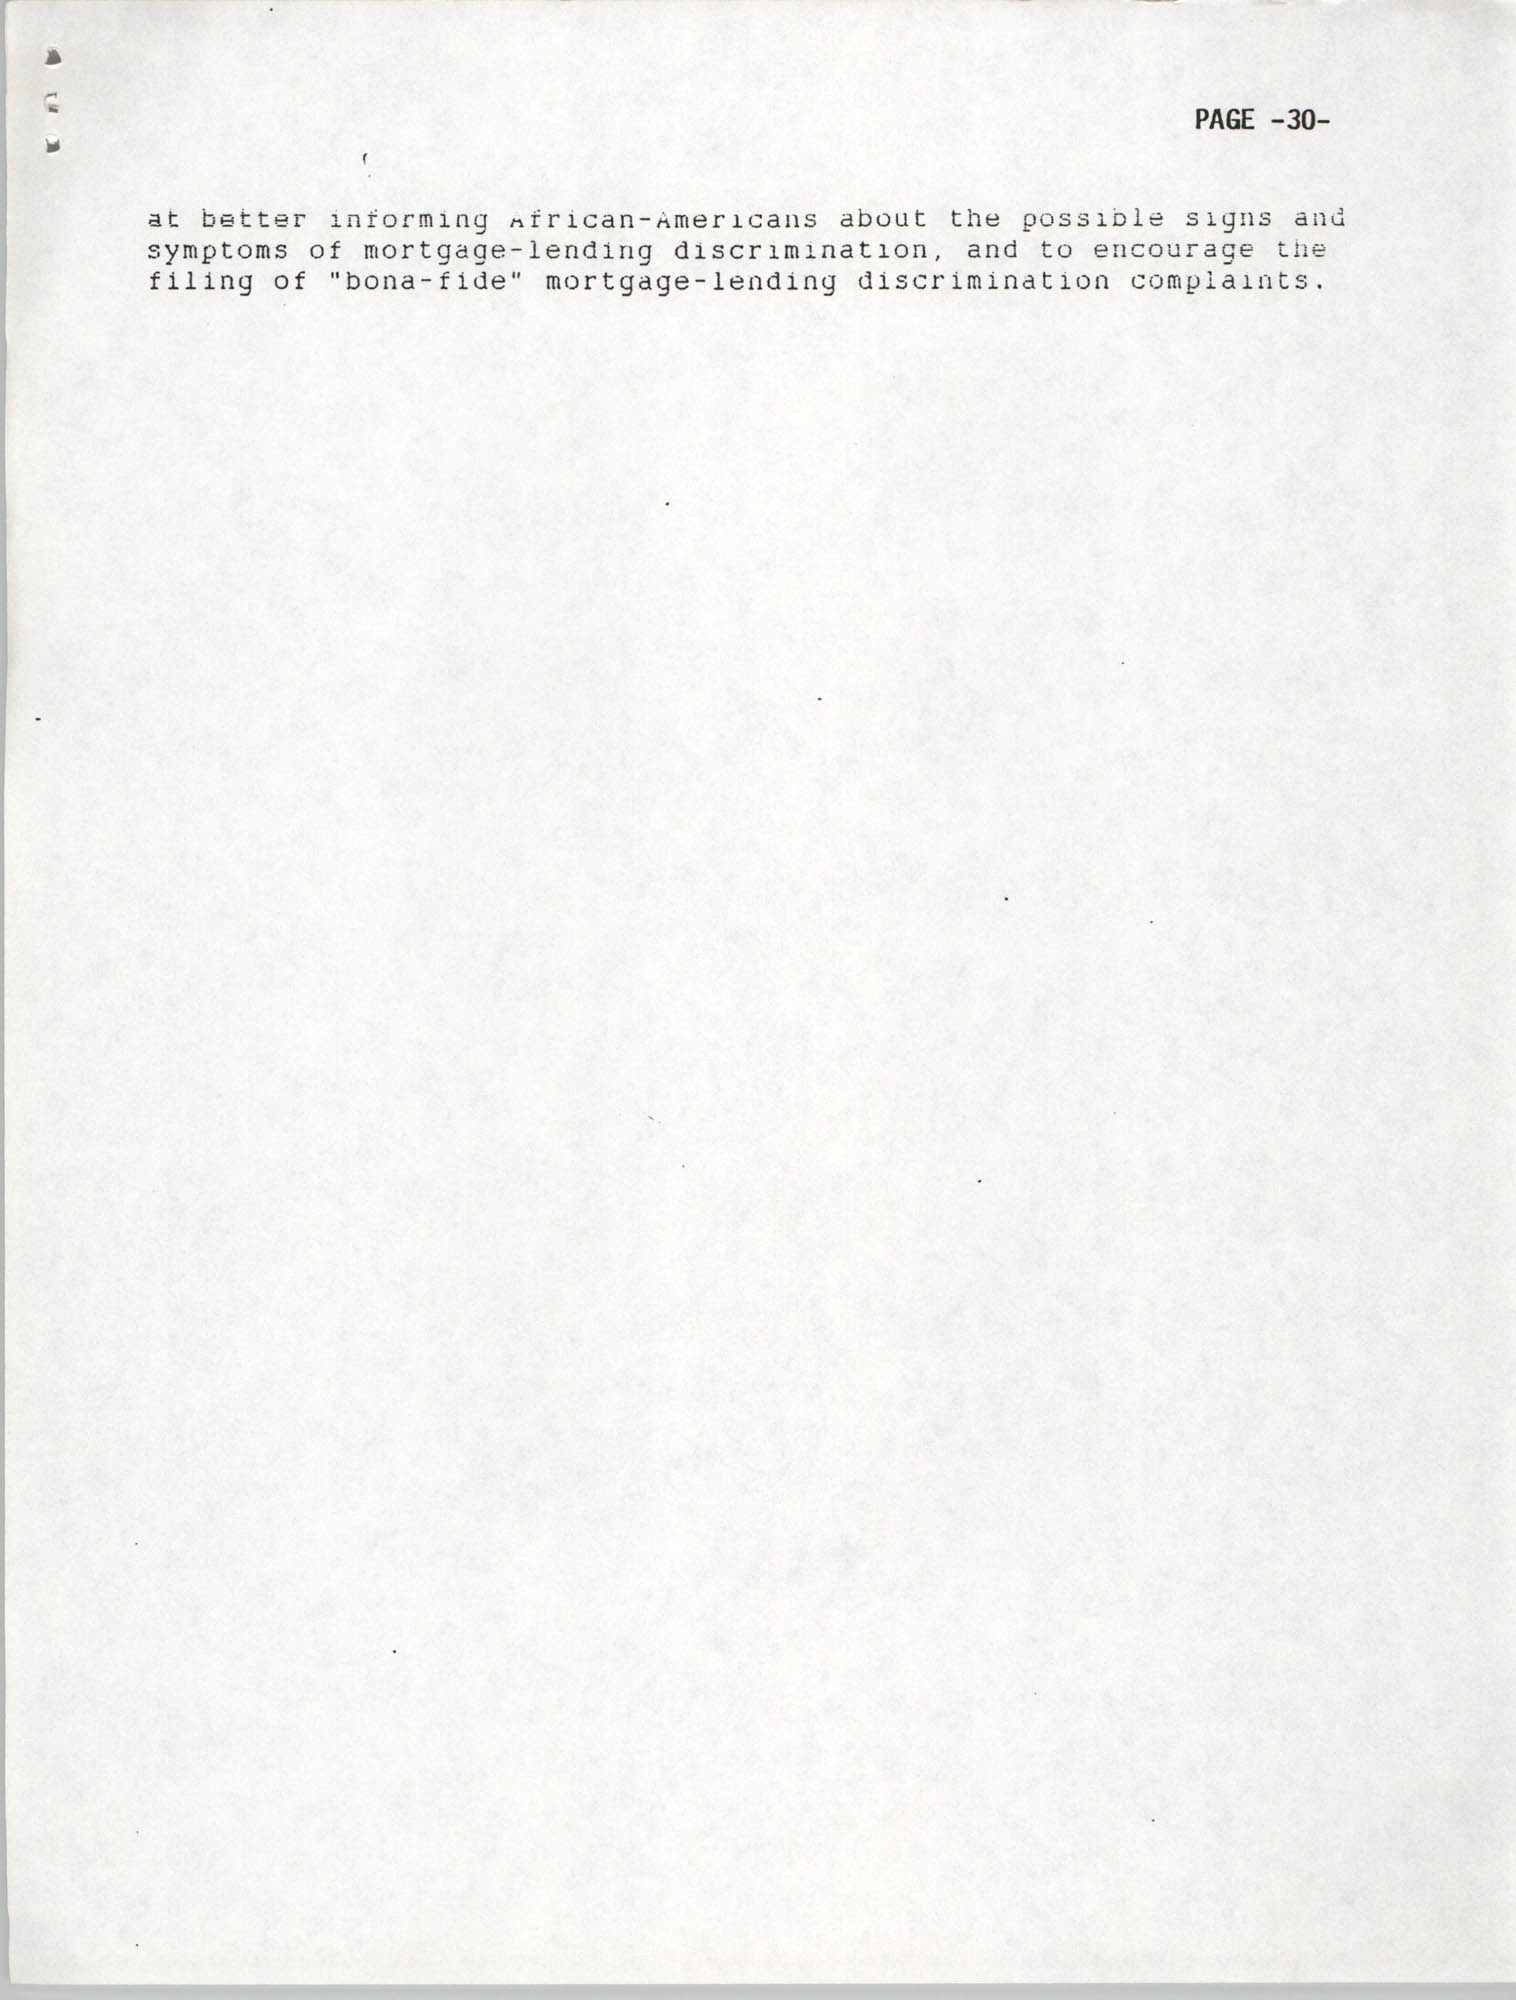 Resolutions Submitted Under Article X, Section 2 of the Constitution of the NAACP, 1992, Page 30